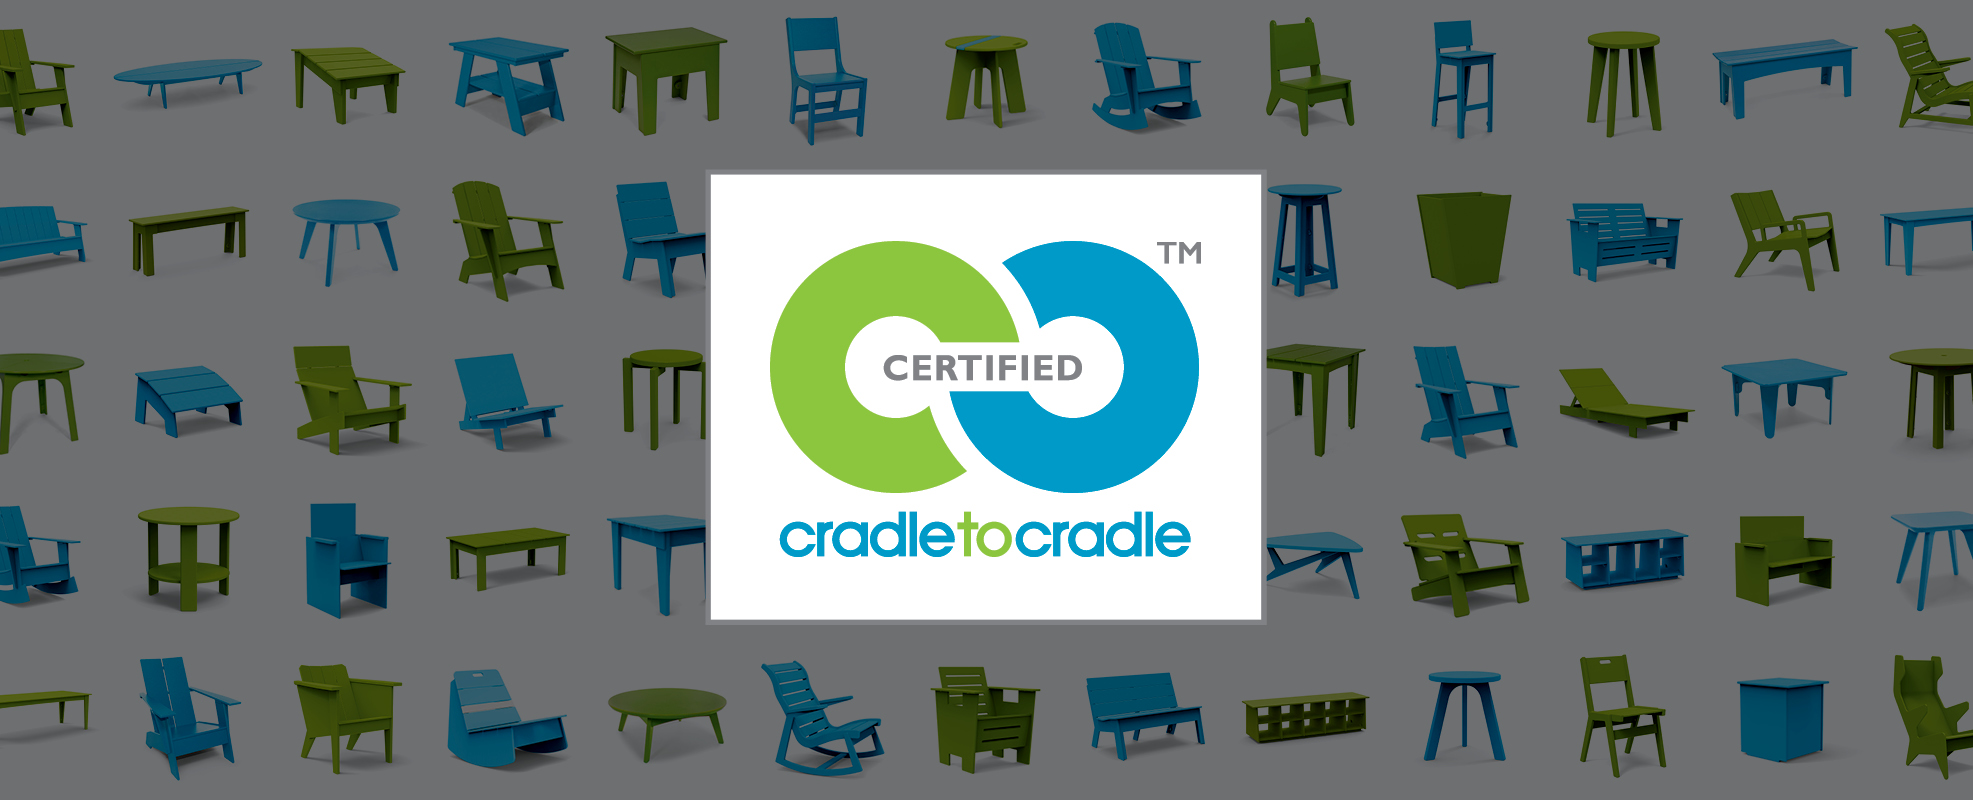 Cradle to Cradle Certified Loll products are now Cradle to Cradle Certified